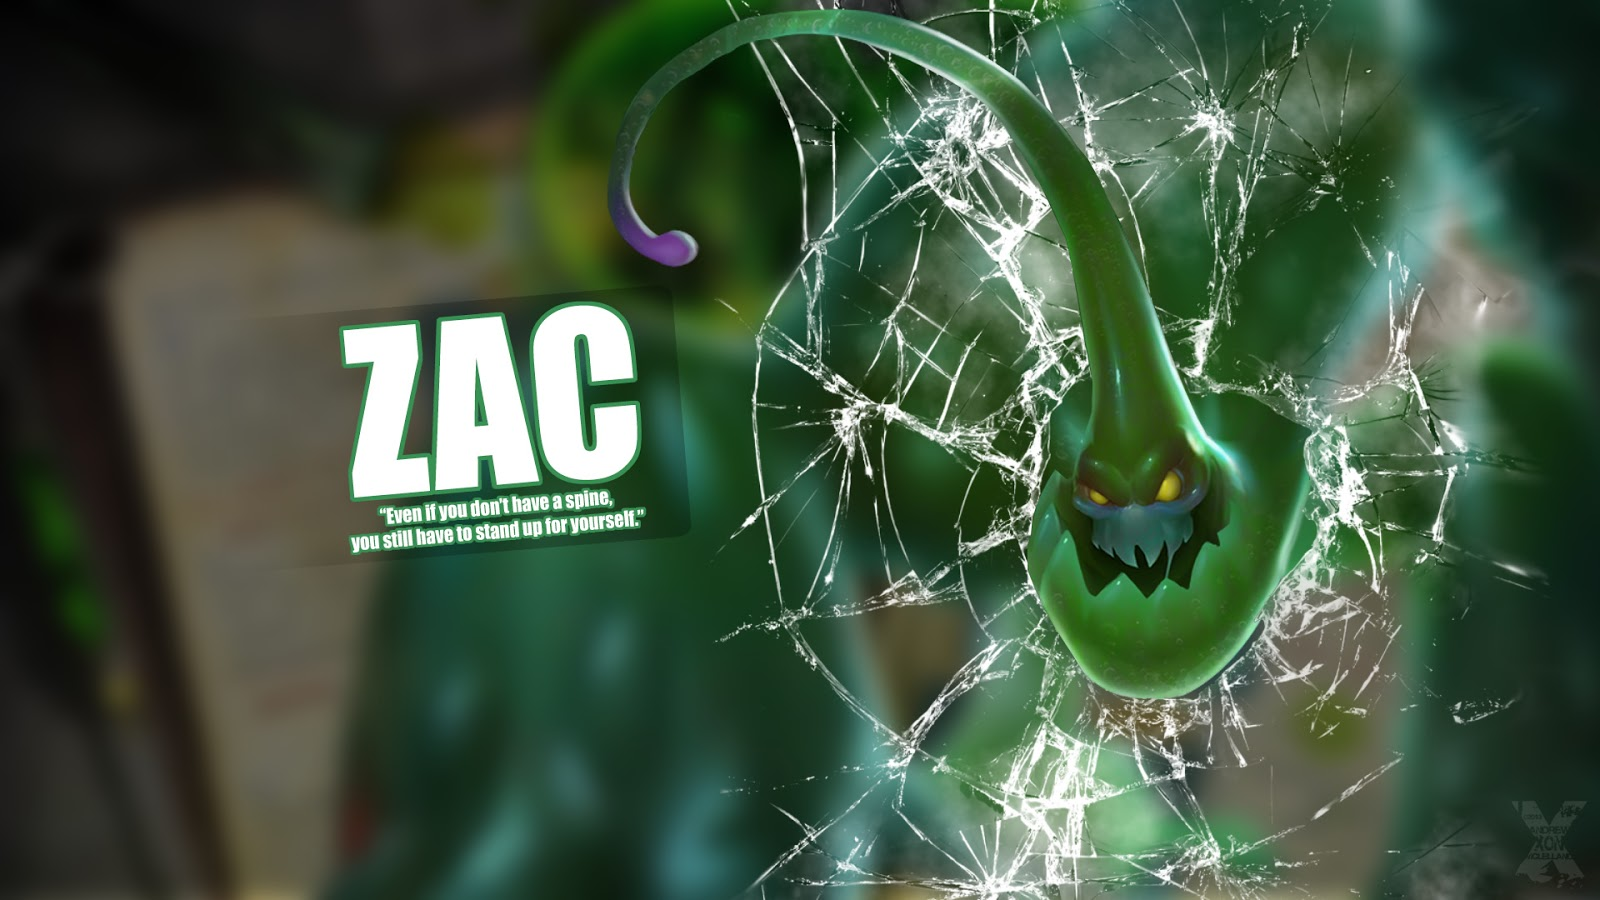 http://3.bp.blogspot.com/-PbDXSRsg6aA/UVVztykPoBI/AAAAAAAAGSg/3lOJKDgkm08/s1600/Zac-screen-crack-wallpaper-by-Andrew-Xon-McLelland.jpg